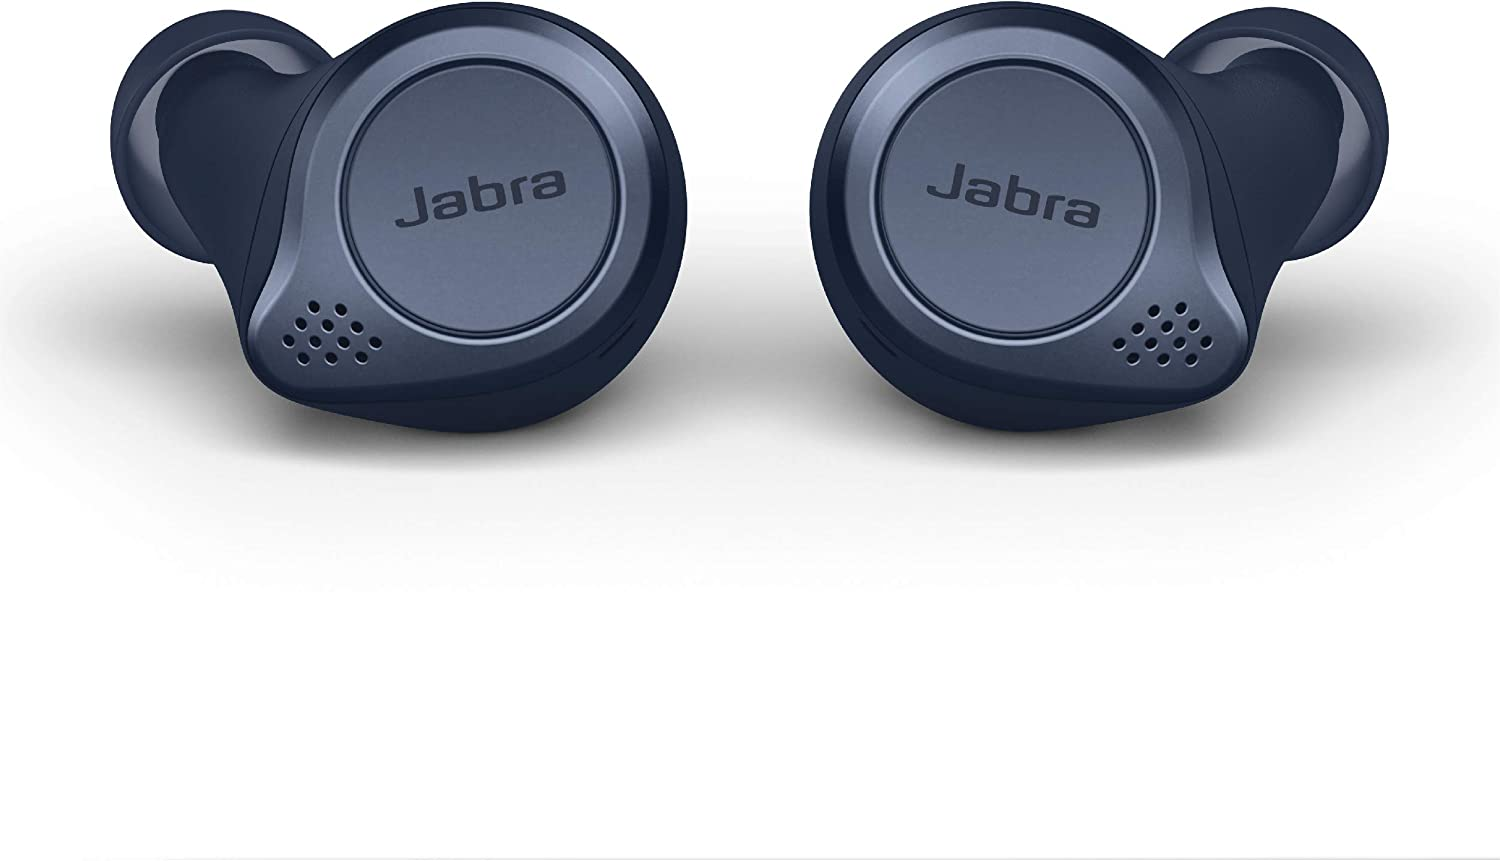 Amazon Com Jabra Elite Active 75t True Wireless Bluetooth Earbuds Navy Wireless Earbuds For Running And Sport Charging Case Included 4th Generation 28 Hour Battery Sport Earbuds